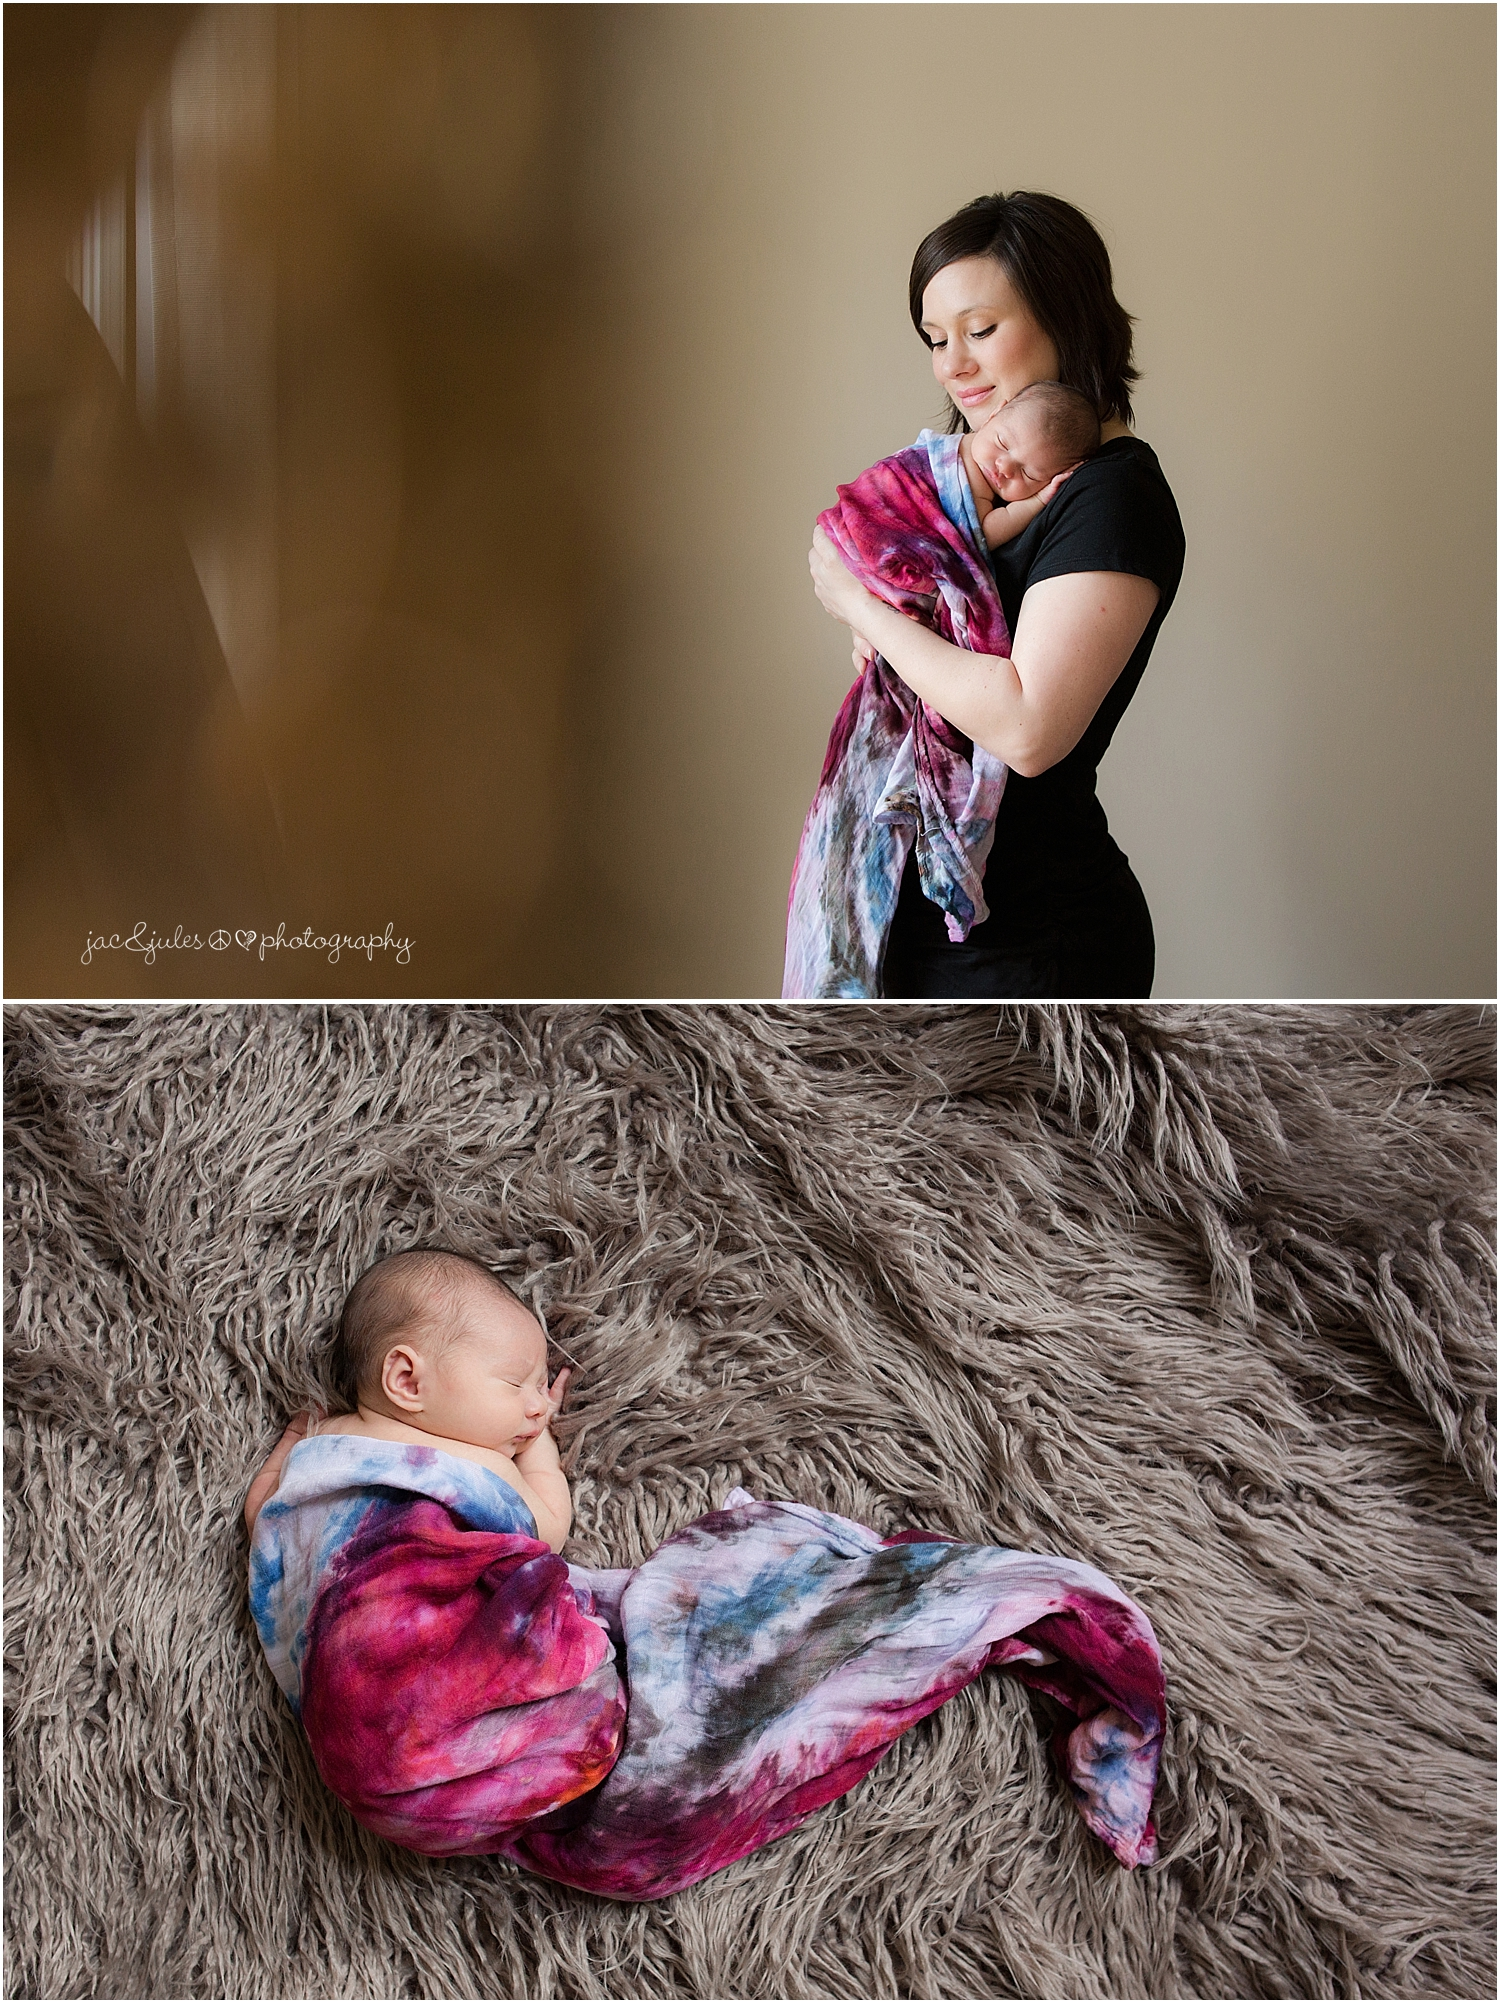 jacnjules photographs newborn baby girl and mom in their home in nnj